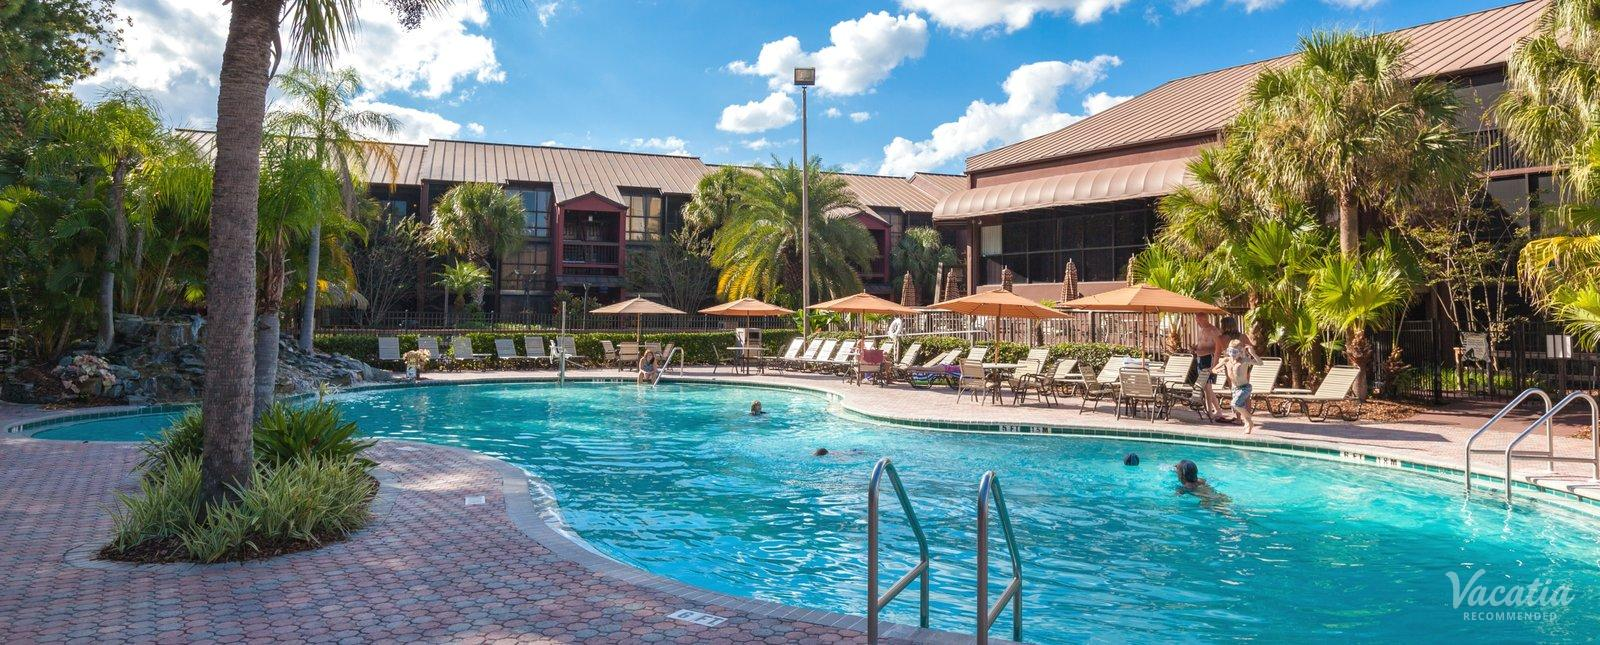 Parkway International Resort Pool